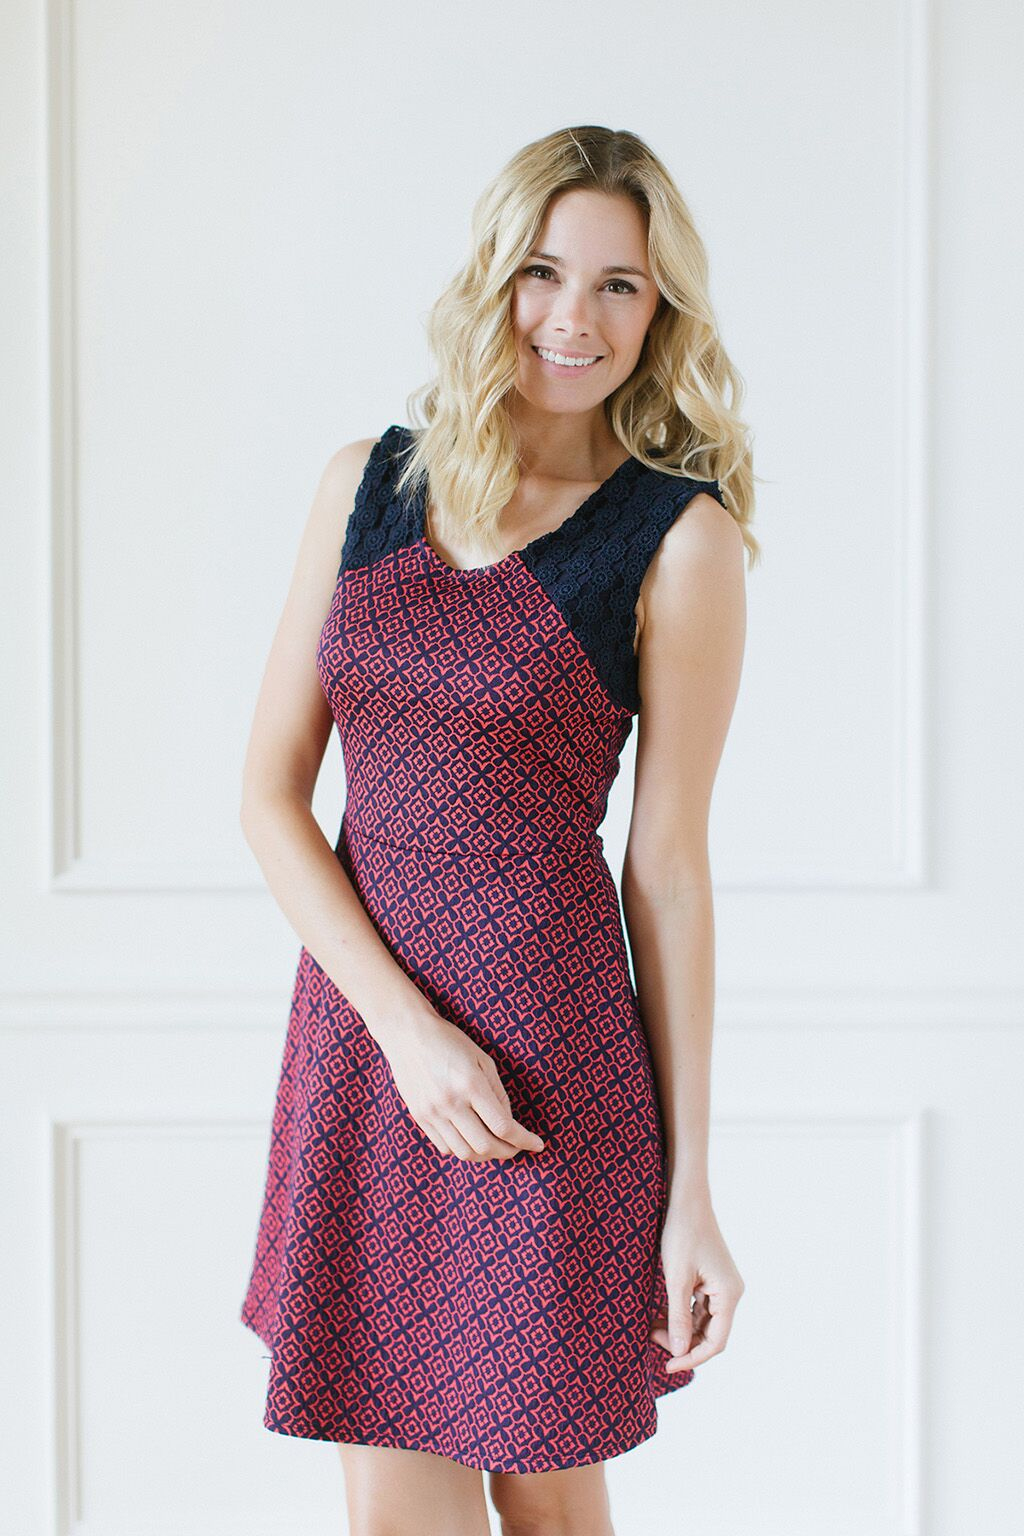 KOKOON Crosby Dress in Navy and Coral Jacquard Back